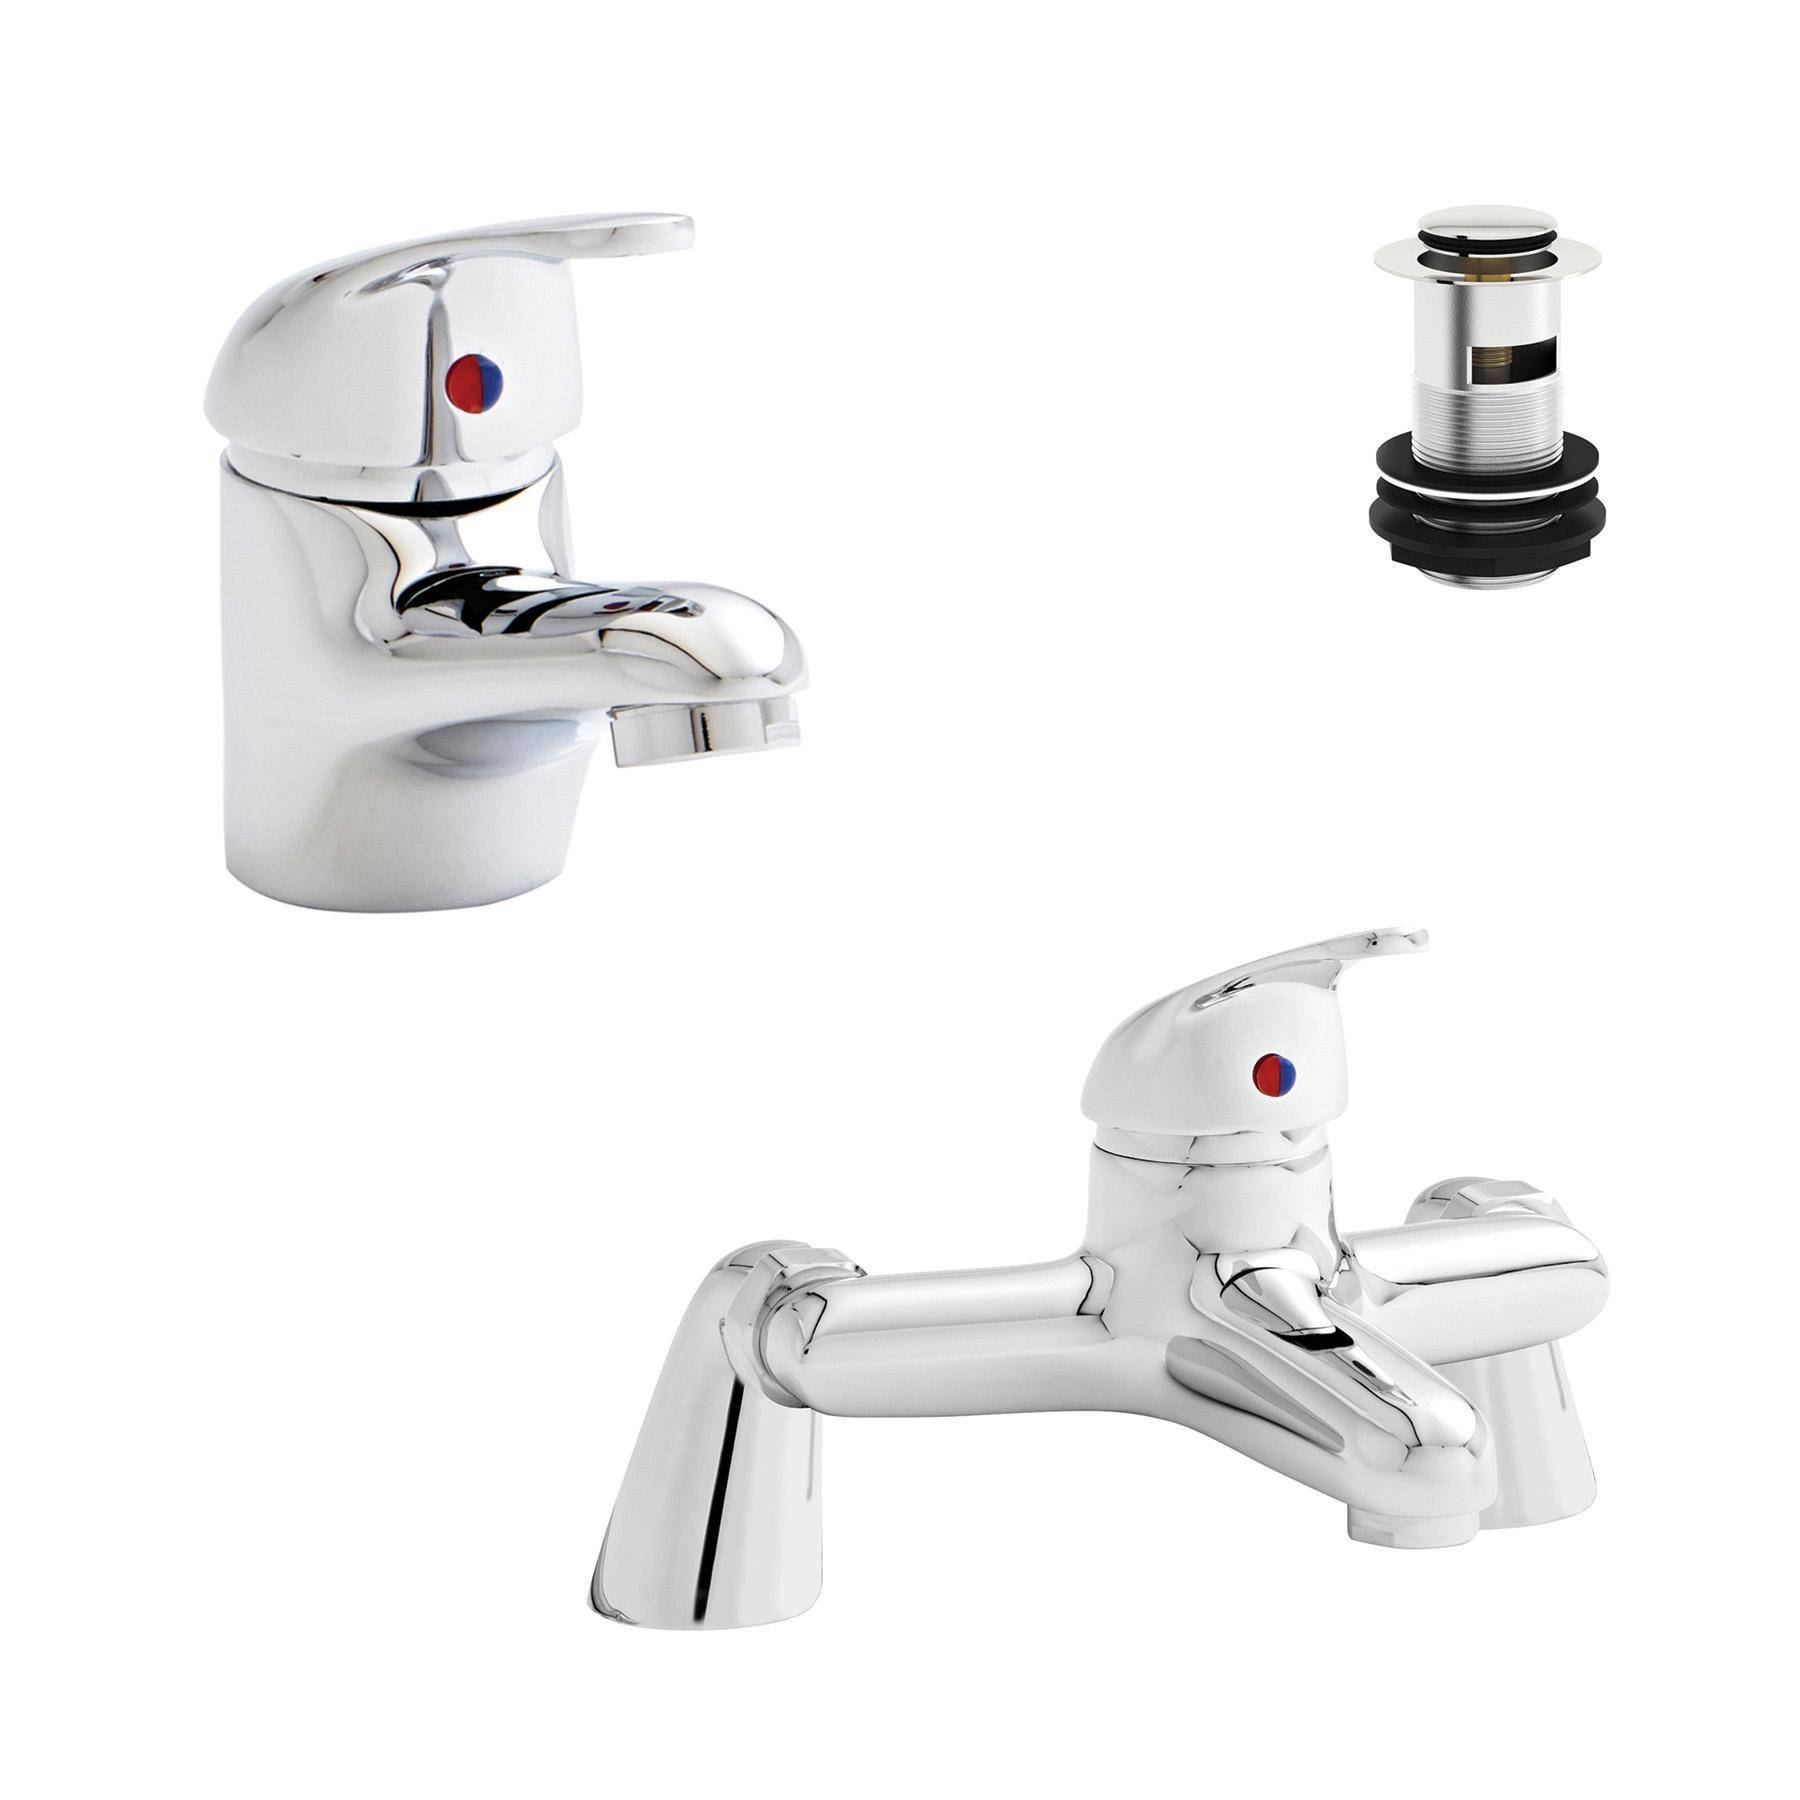 Royal Bathrooms Kartell G4  Bath Filler And Mono Basin Sink Mixer Tap  Bathroom Set with Free Waste Solid Brass - Chrome